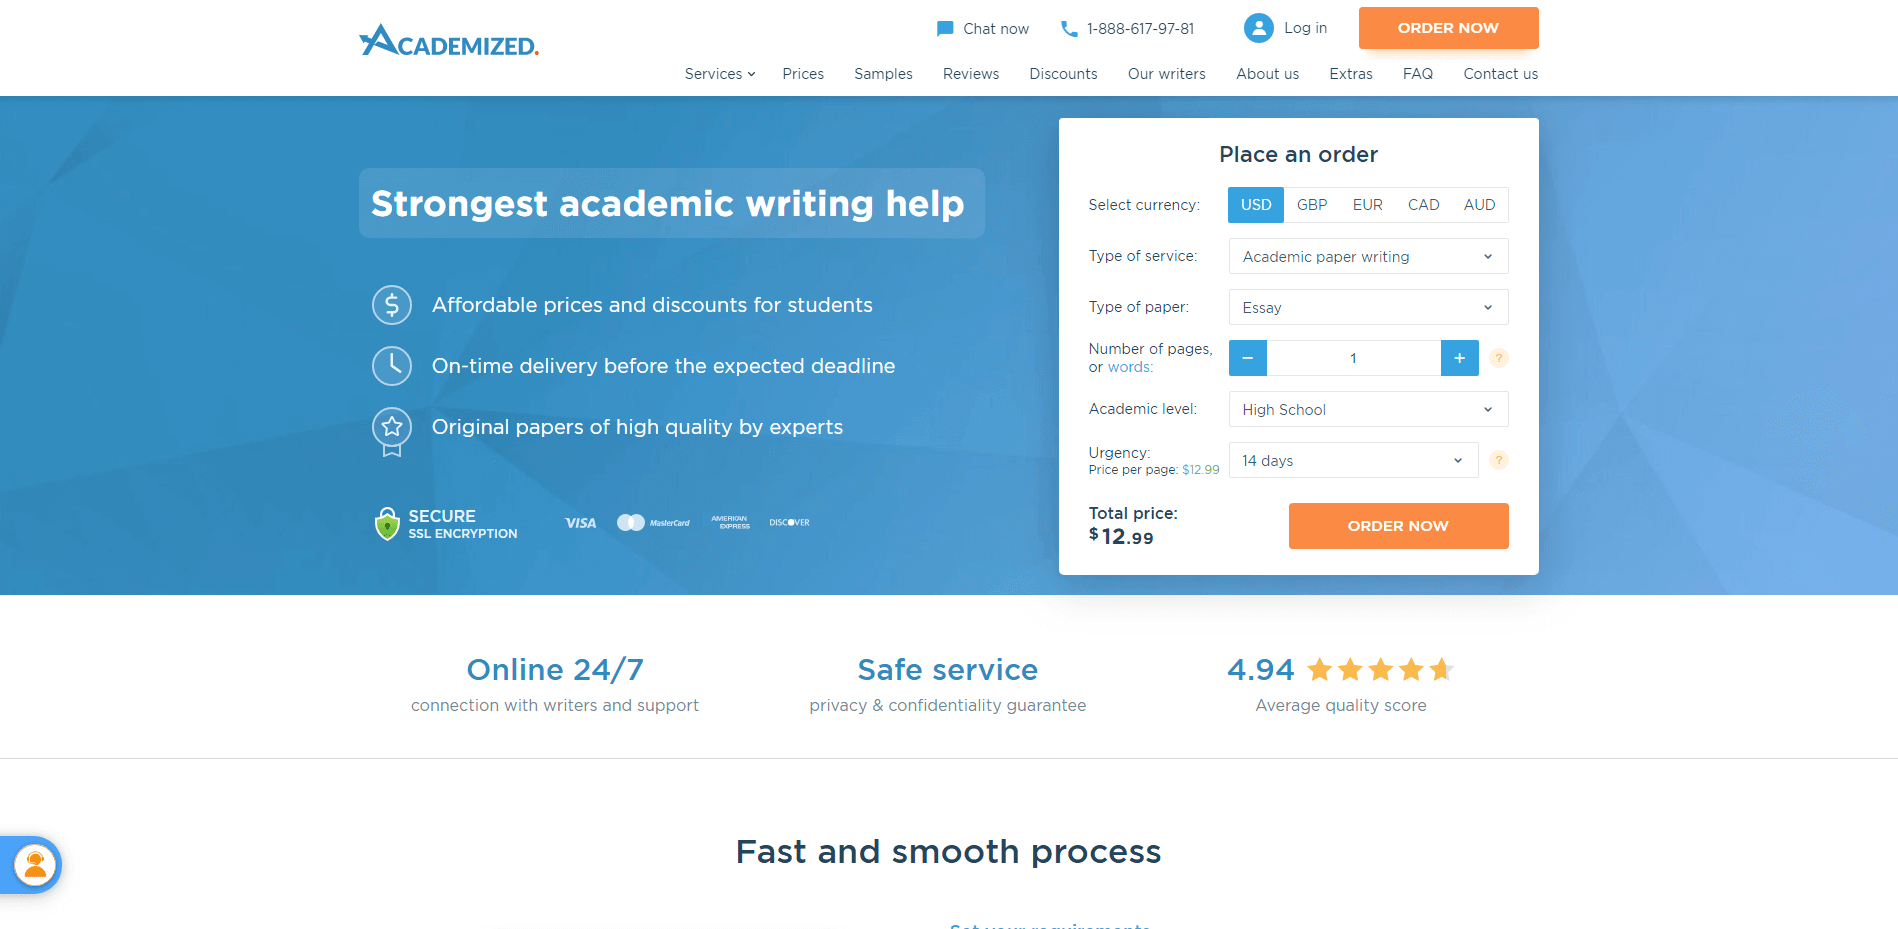 Academized.com Review